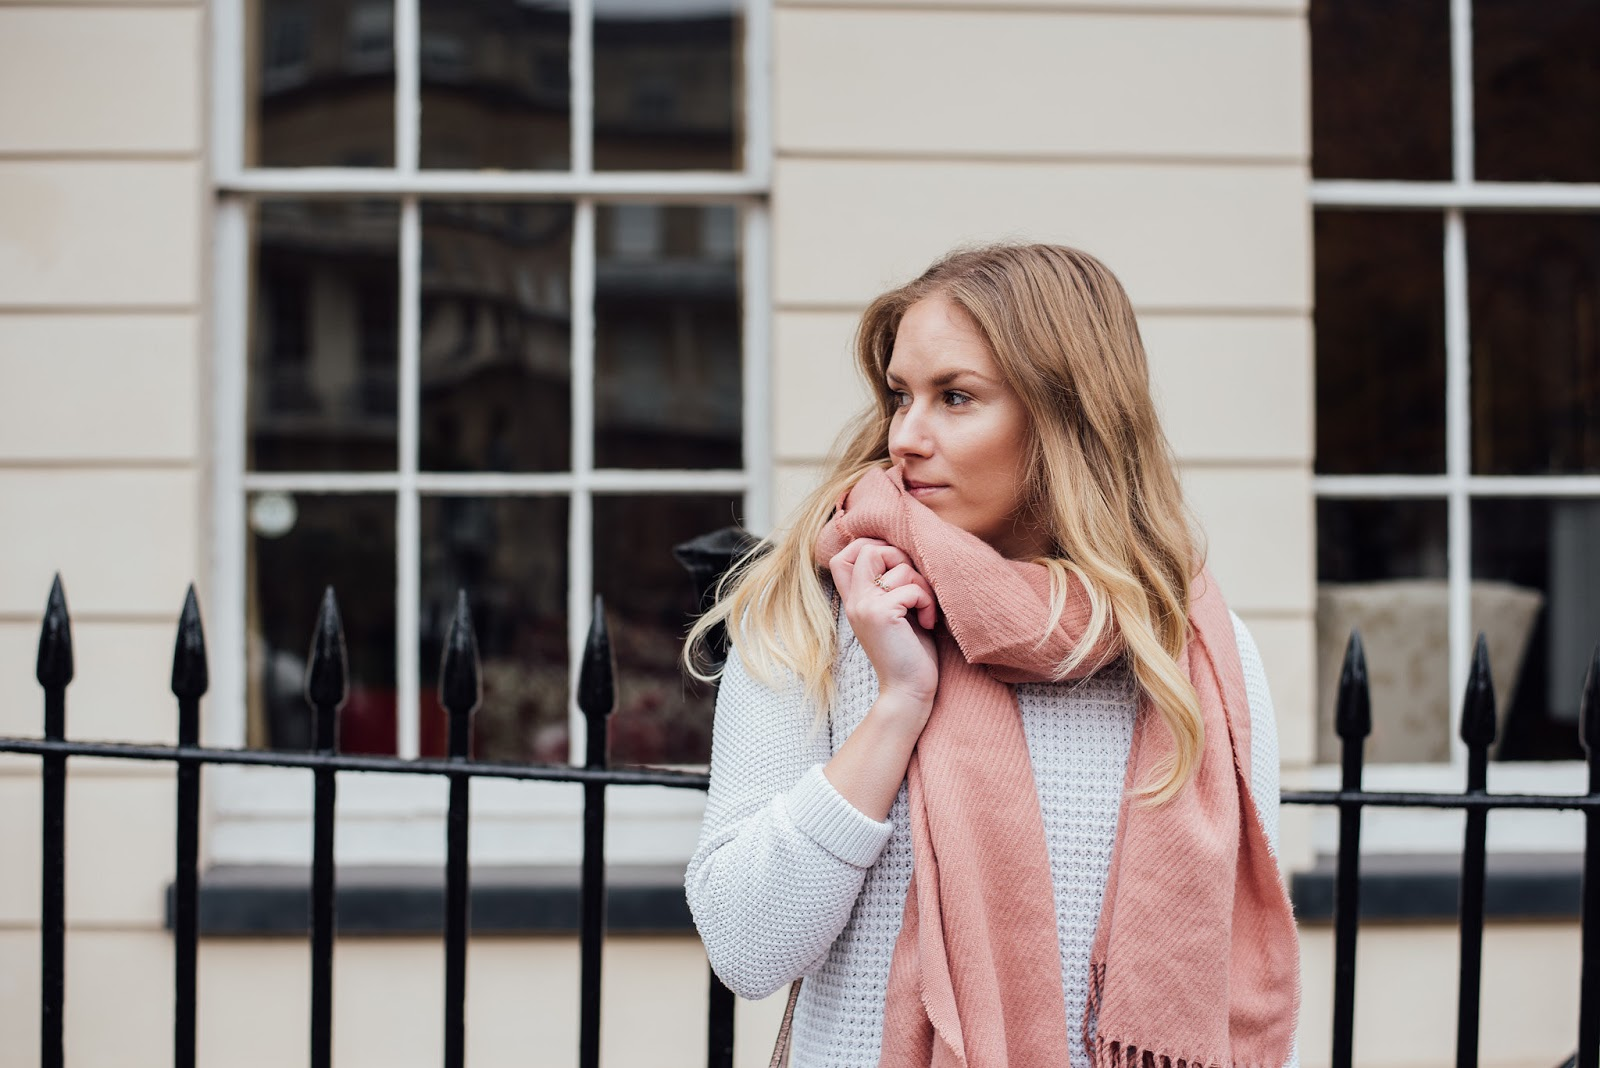 RE wearing a pink scarf, white jumper in front of stone houses